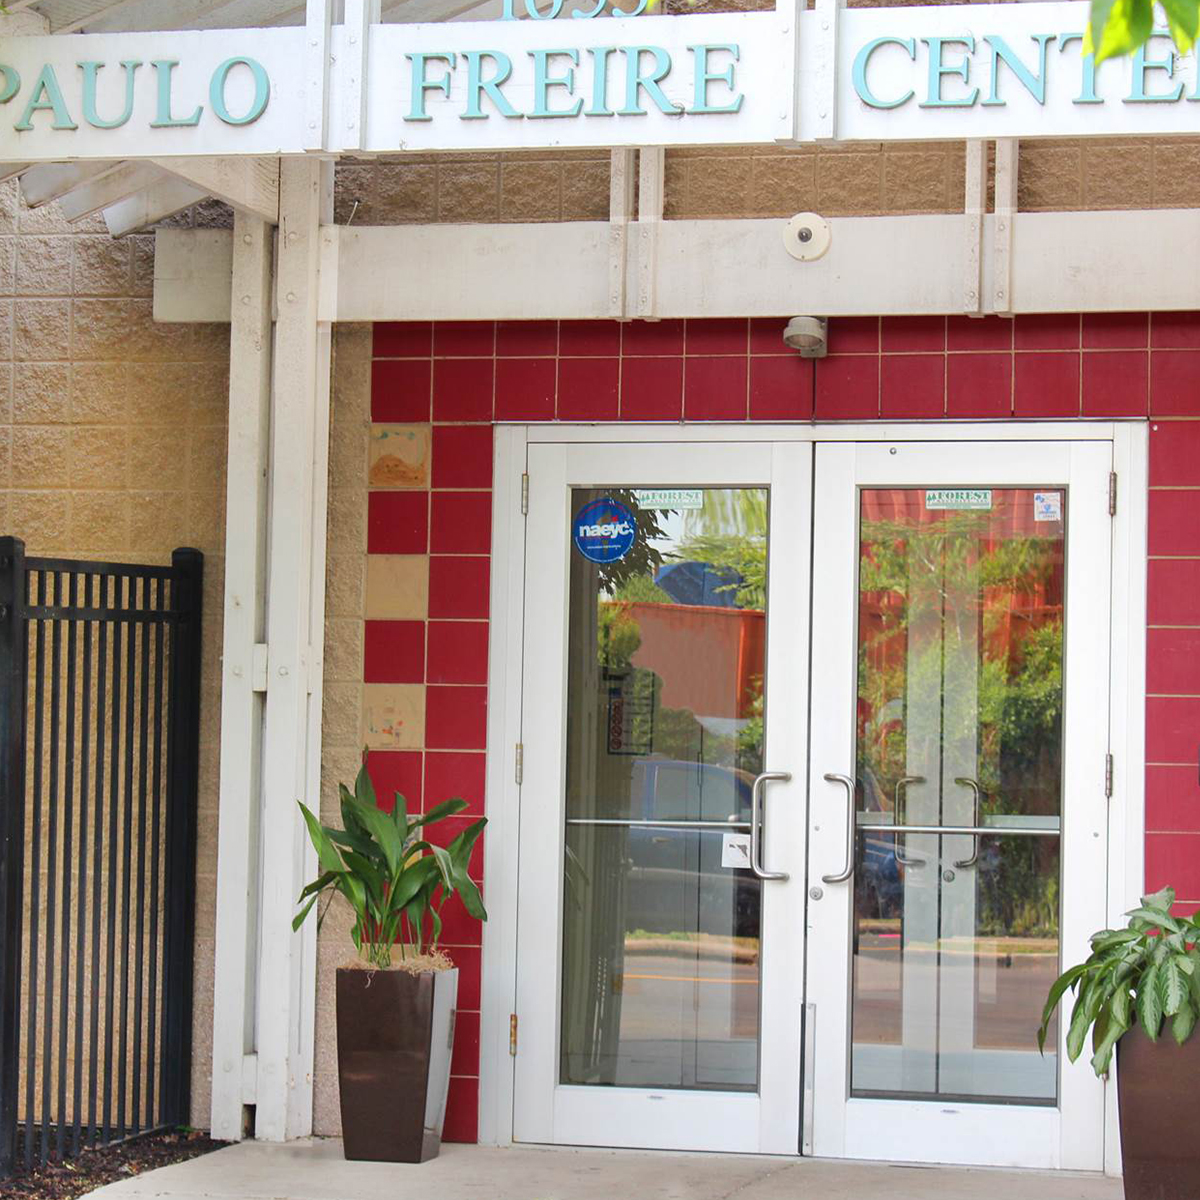 Photo of front door of Paulo Freire Center